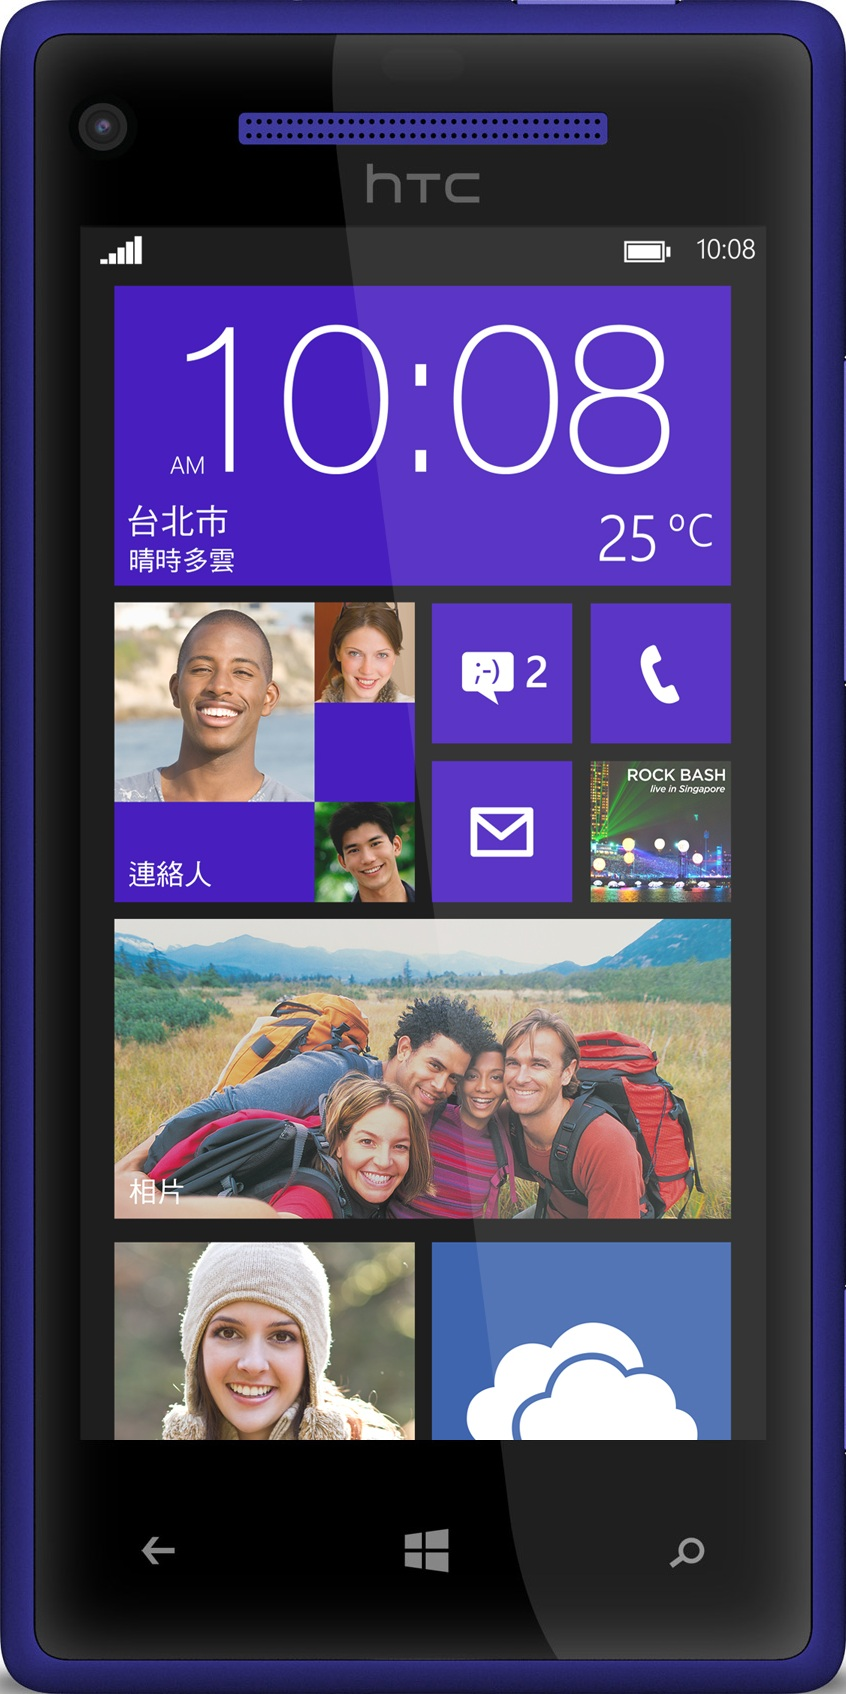 Actual size image of  HTC Windows Phone 8x .